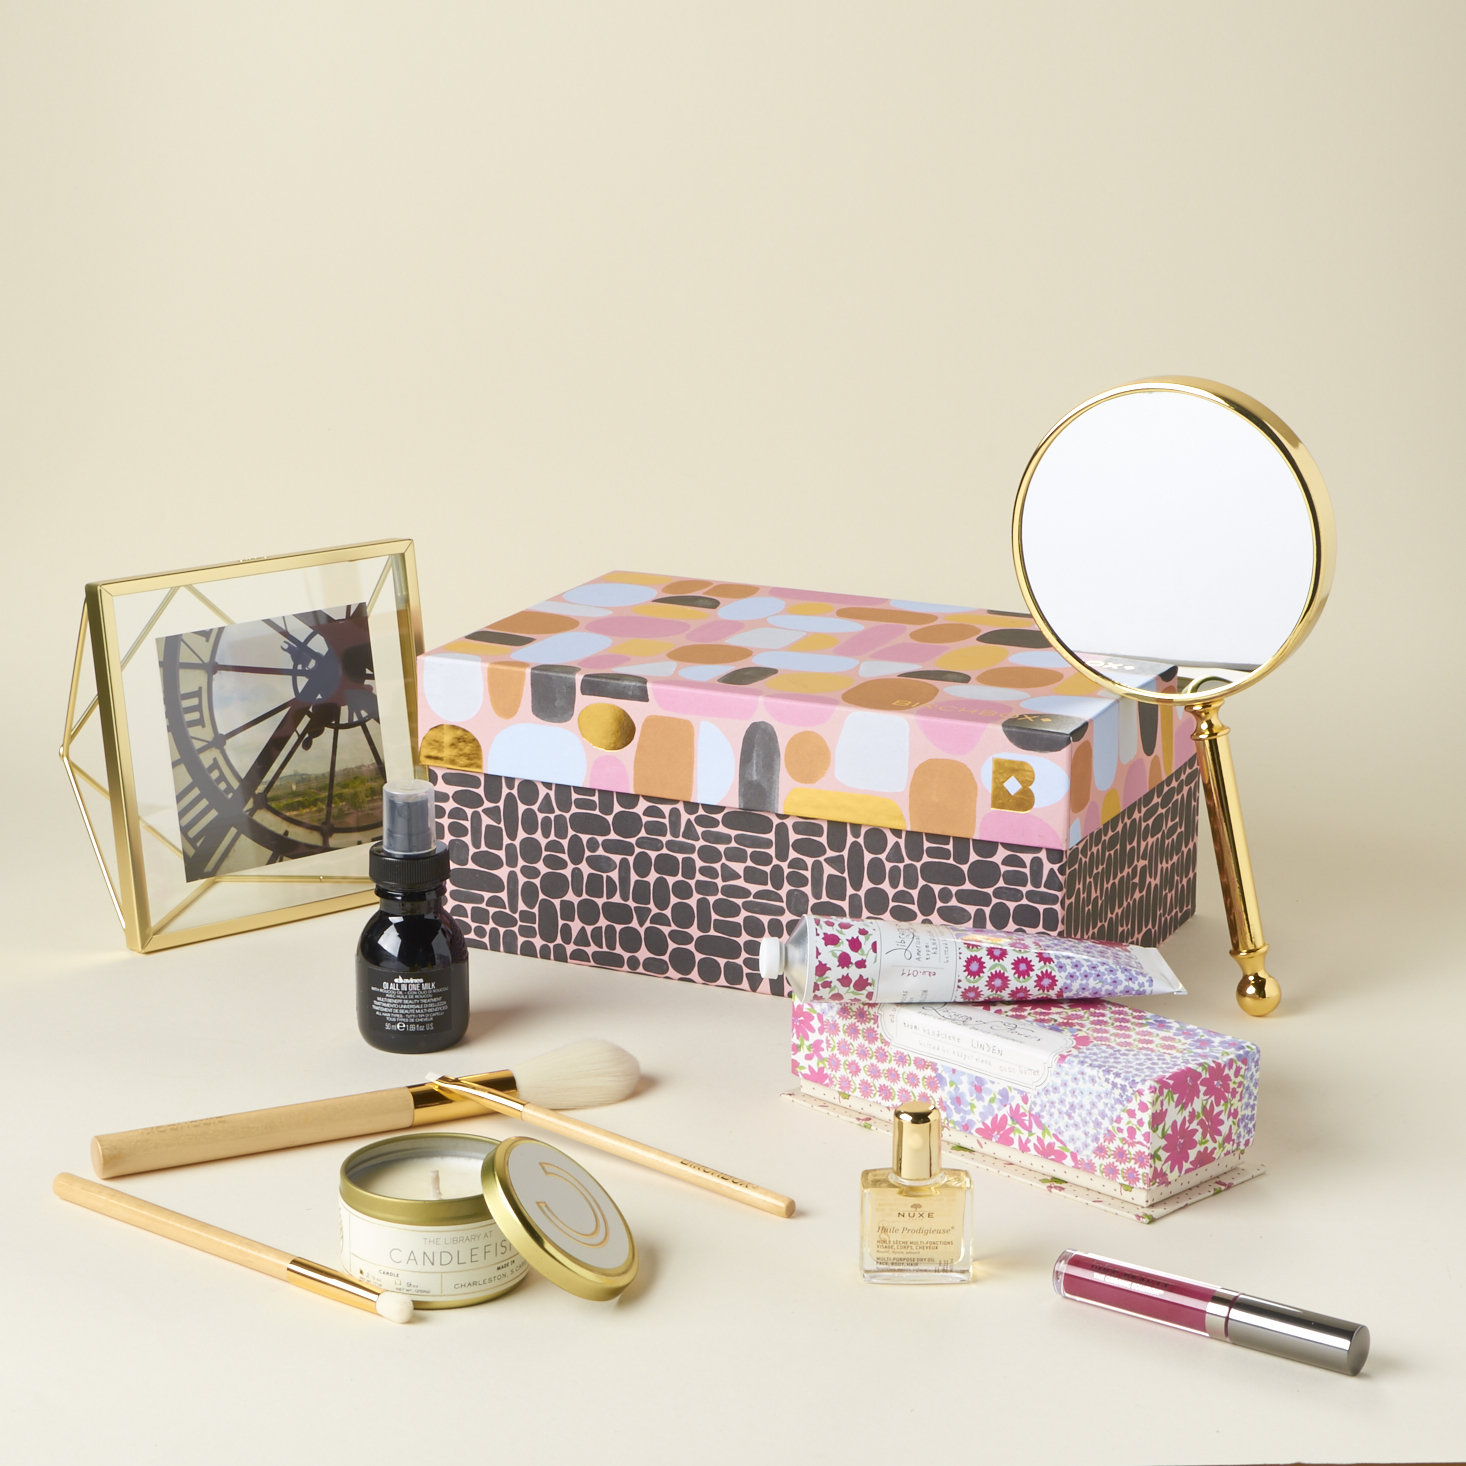 birchbox-good-as-gold-limited-edition-box-november-2016-0003